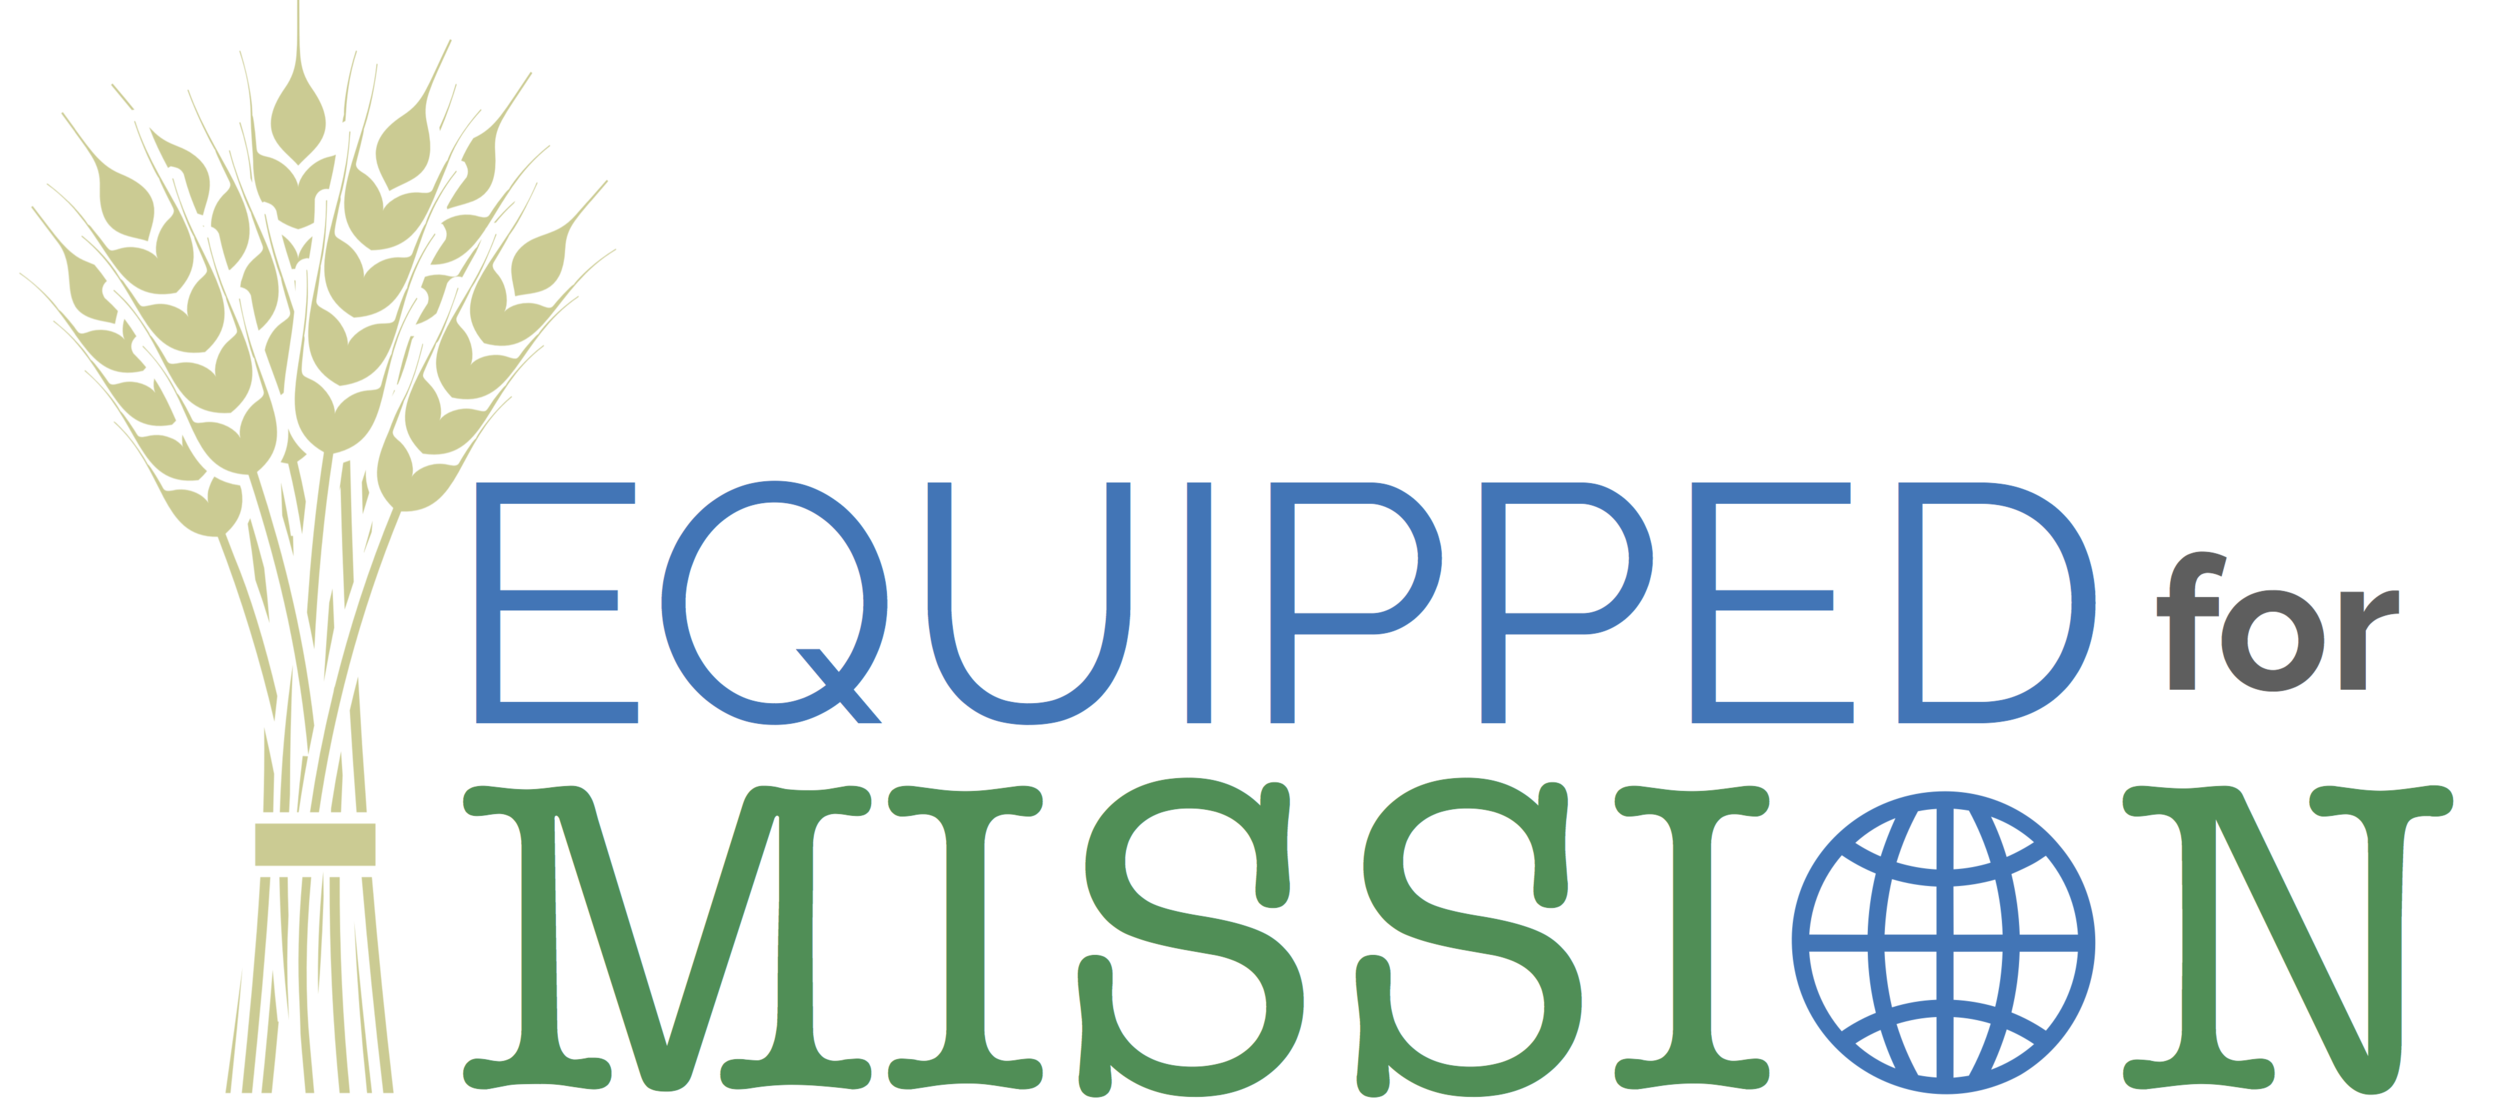 Equipped for Mission branding - Alternate.png